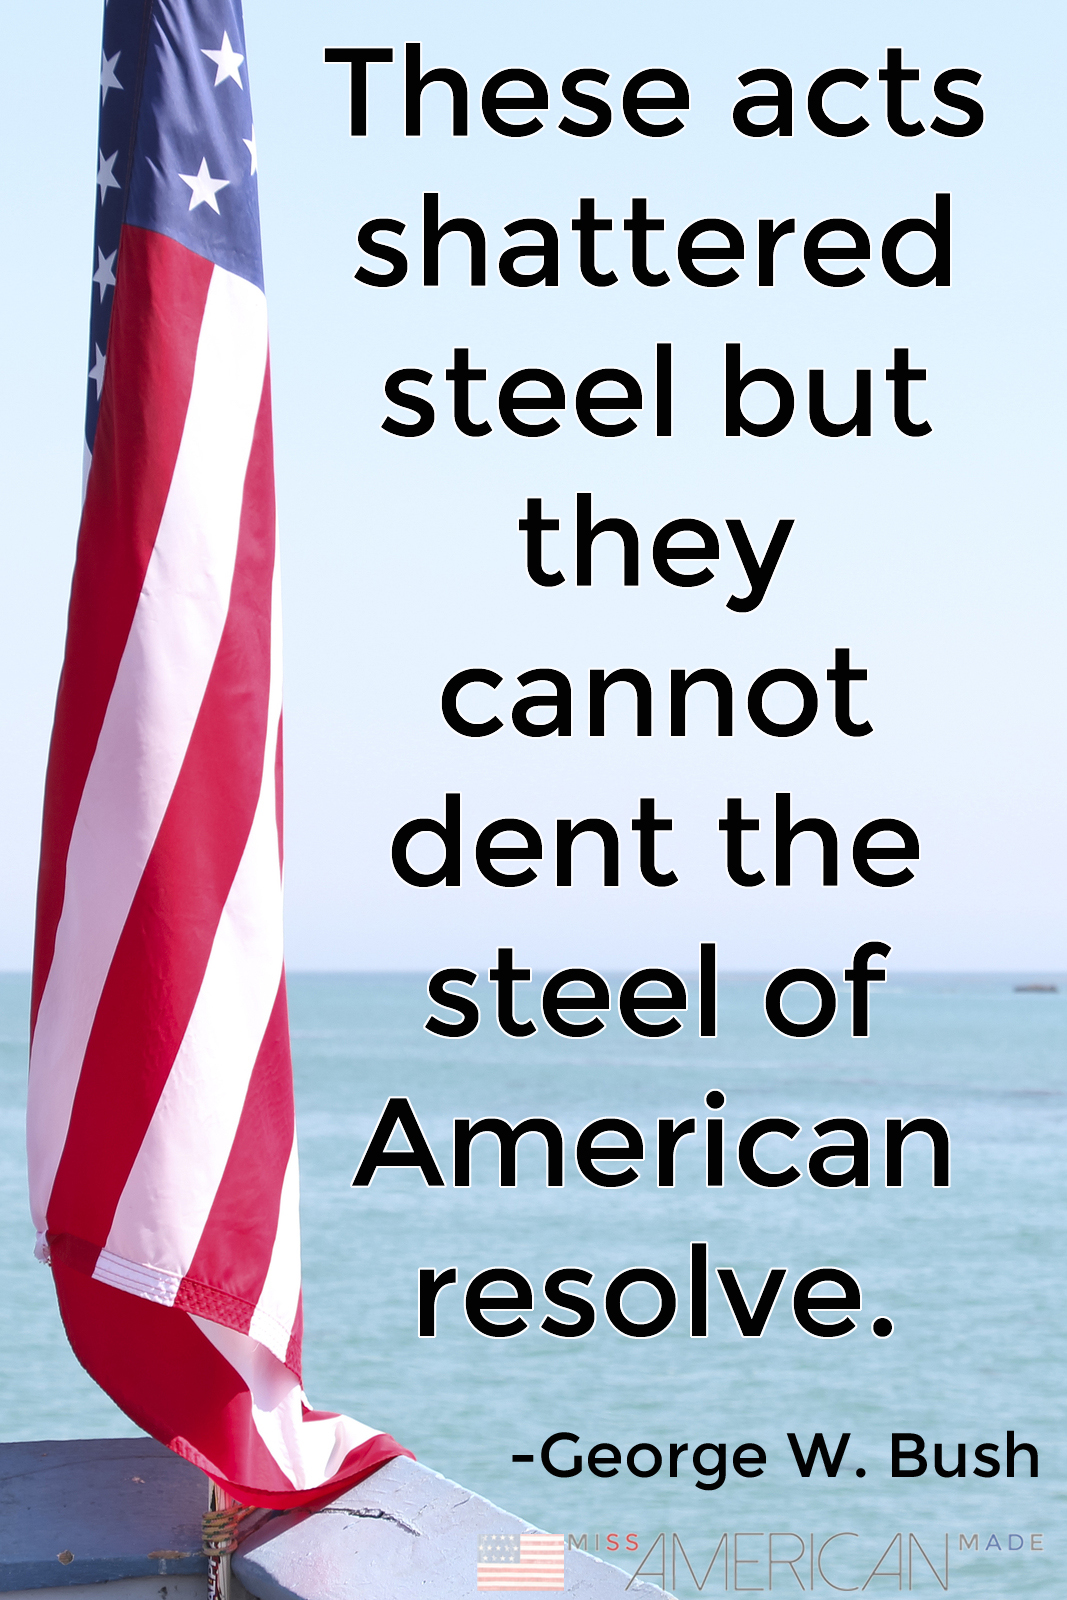 America is stronger than steel.